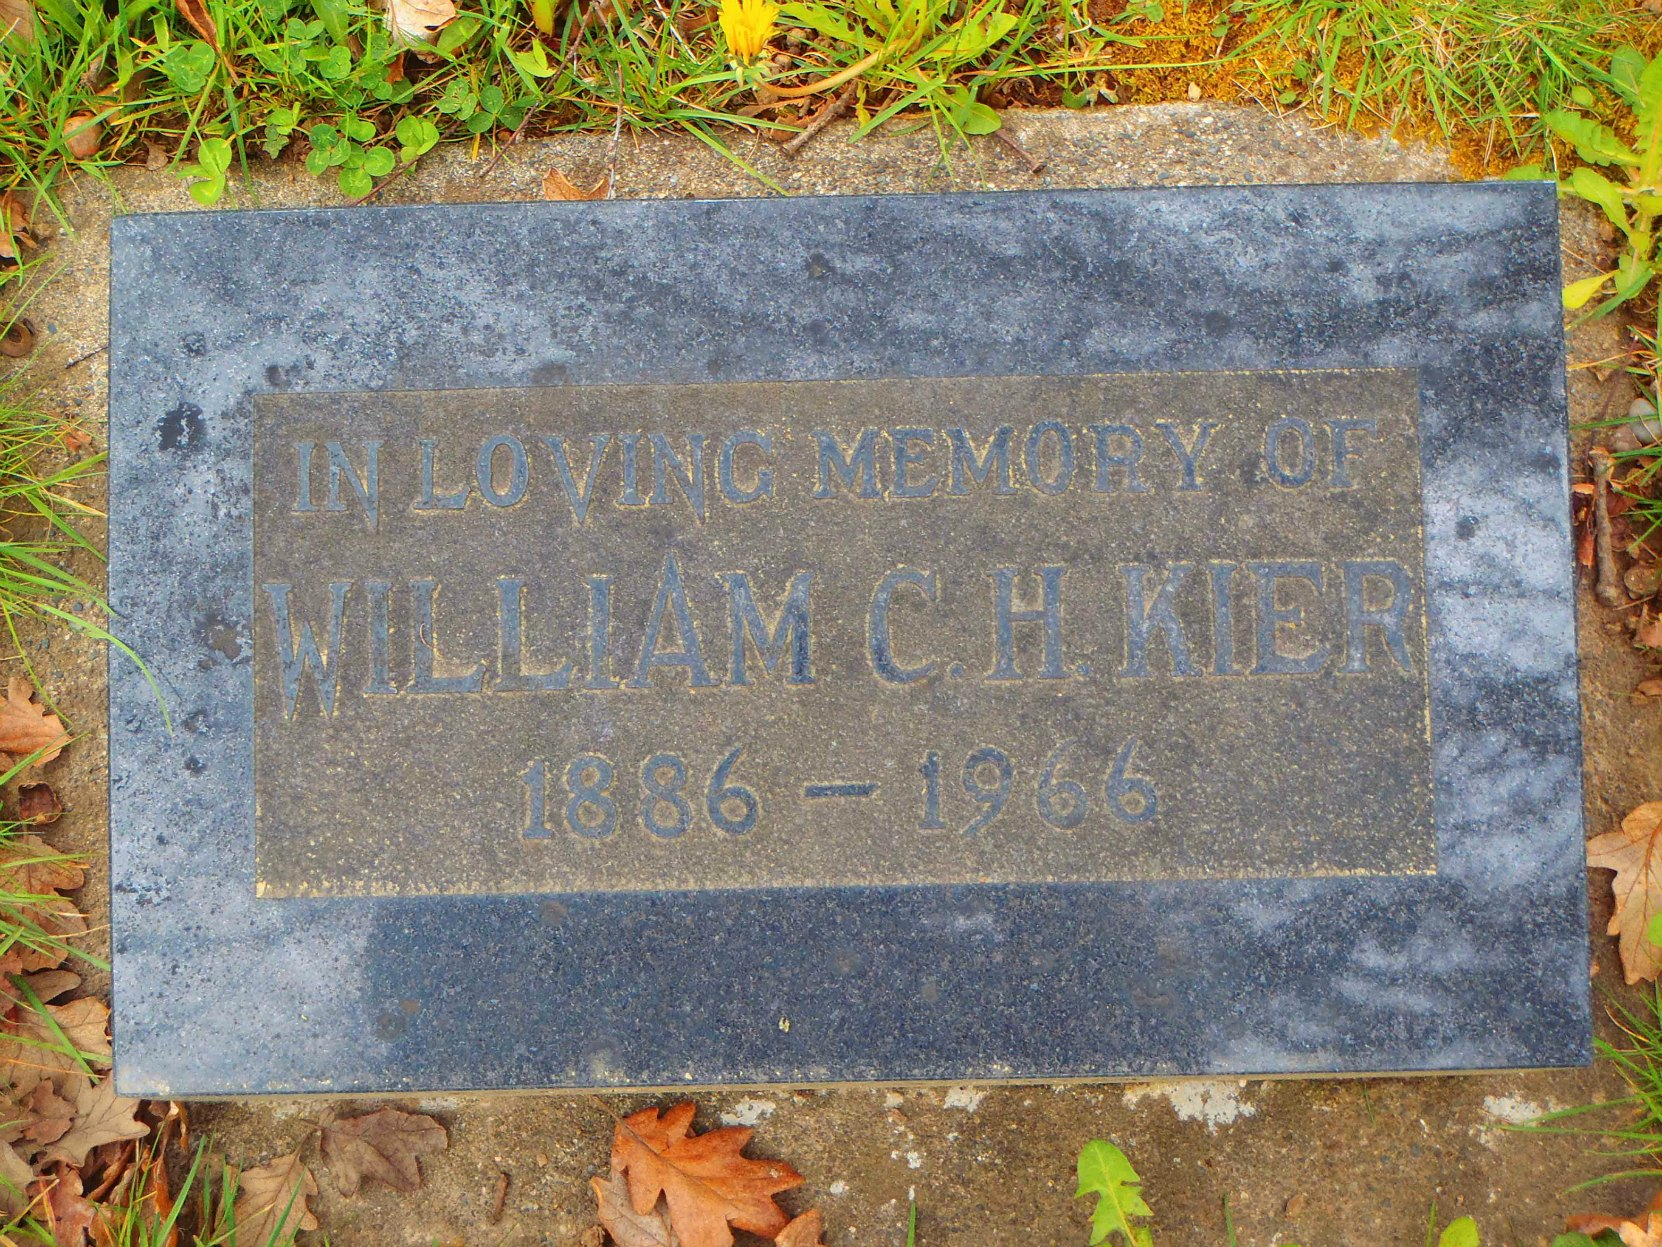 William Kier grave stone, Mountain View Cemetery, North Cowichan (photo by Temple Lodge No. 33 Historian)